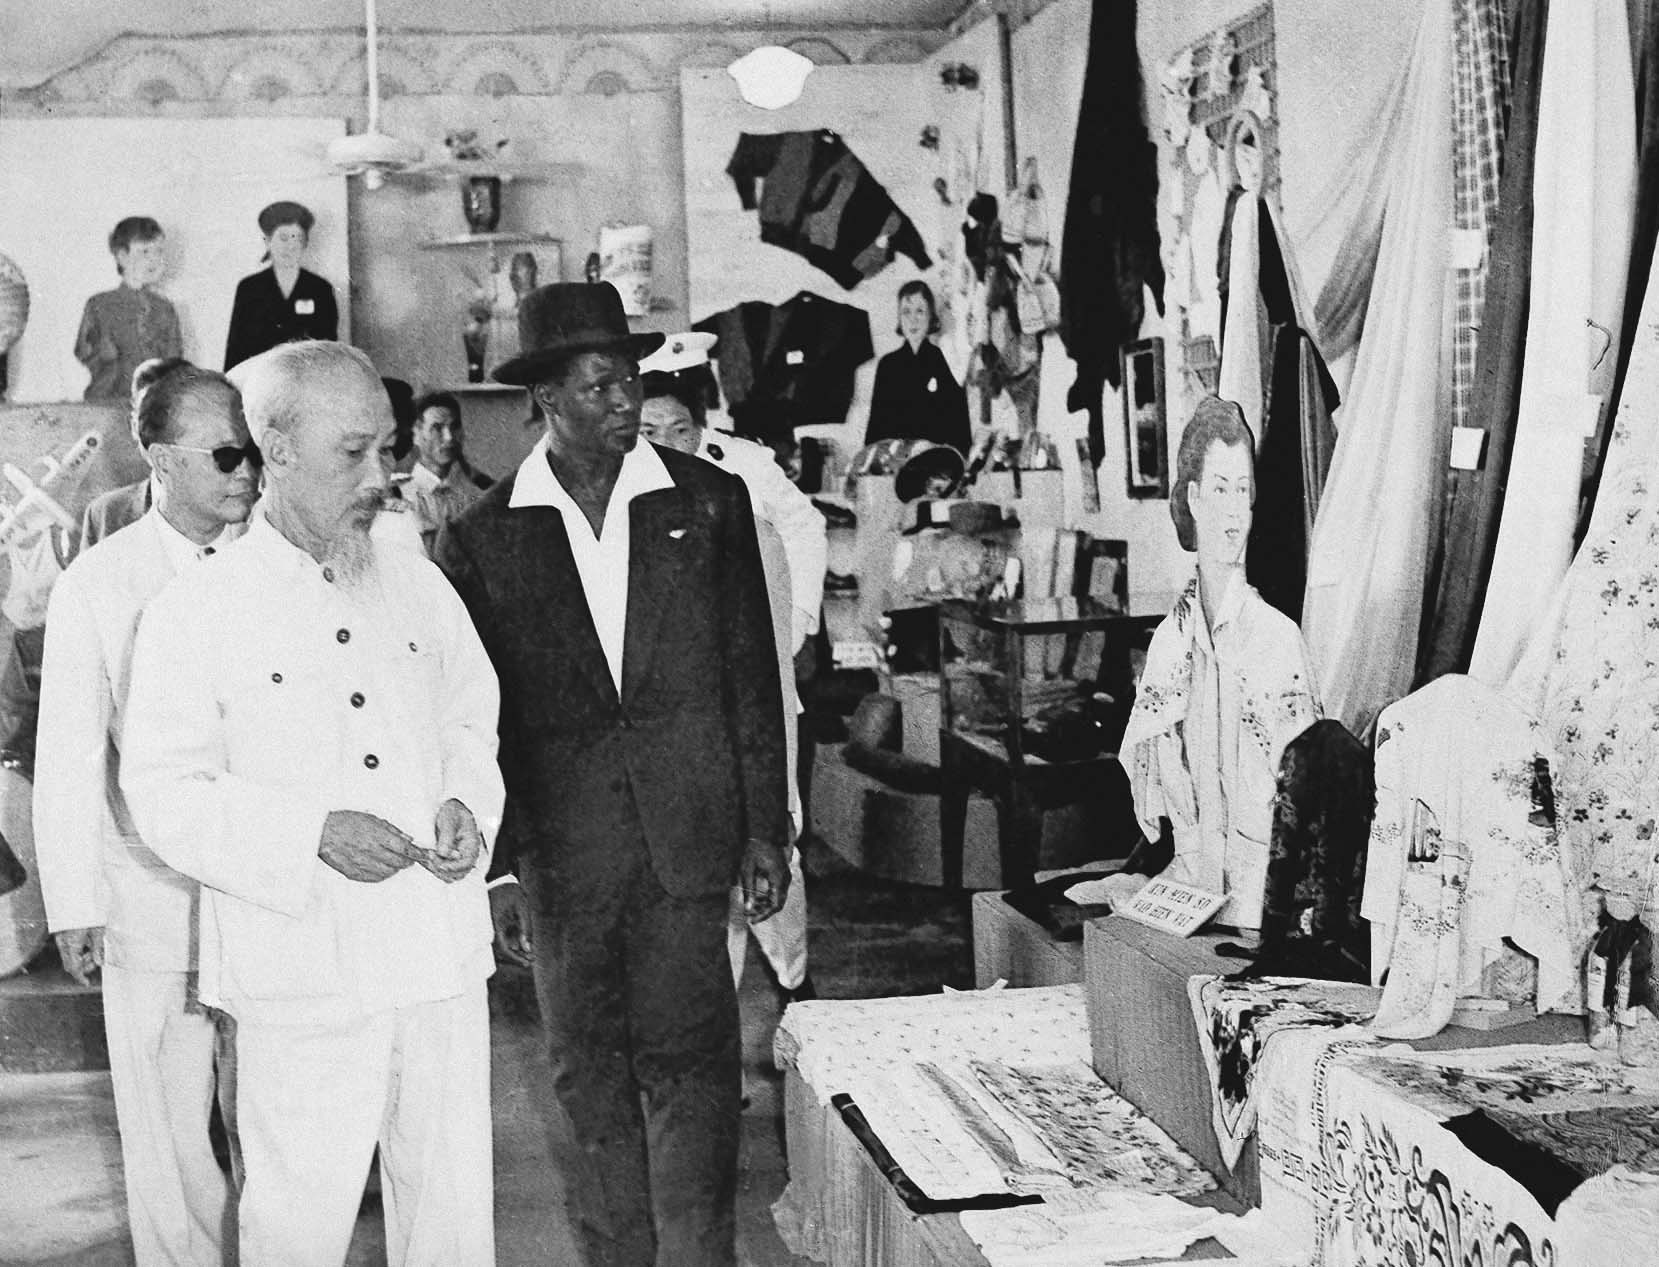 President Ho Minh and the President of the Republic of Guinea, Mr. Amed Sekoutoure, visiting the Exhibition of 15 years of building of the Democratic Republic of Vietnam (September 17th, 1960)